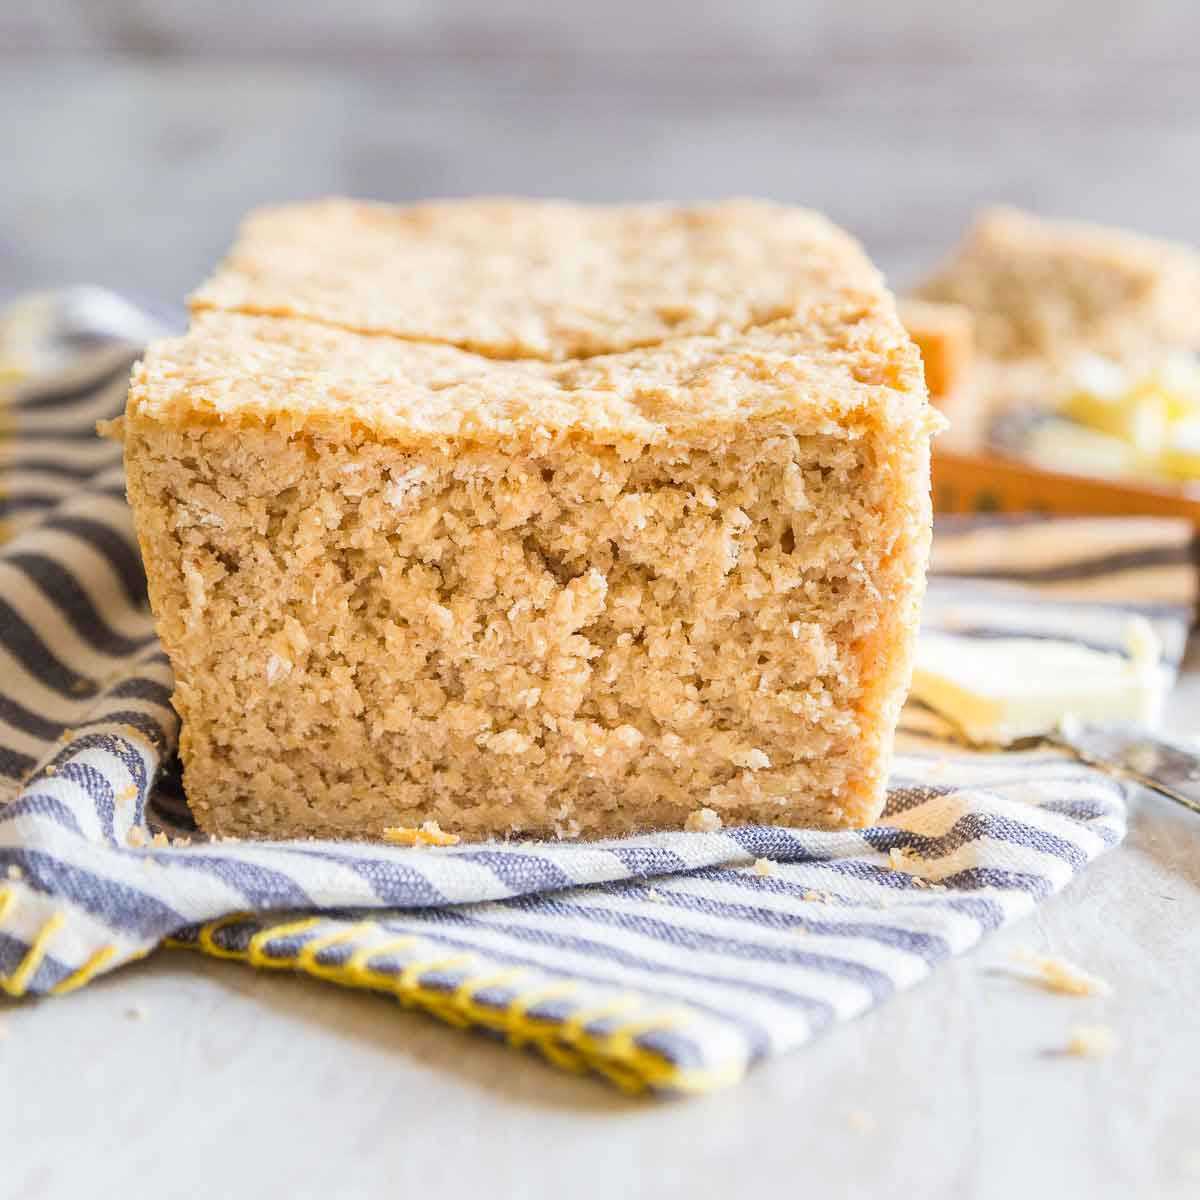 Follow this easy recipe for the best oat bread you can make at home.